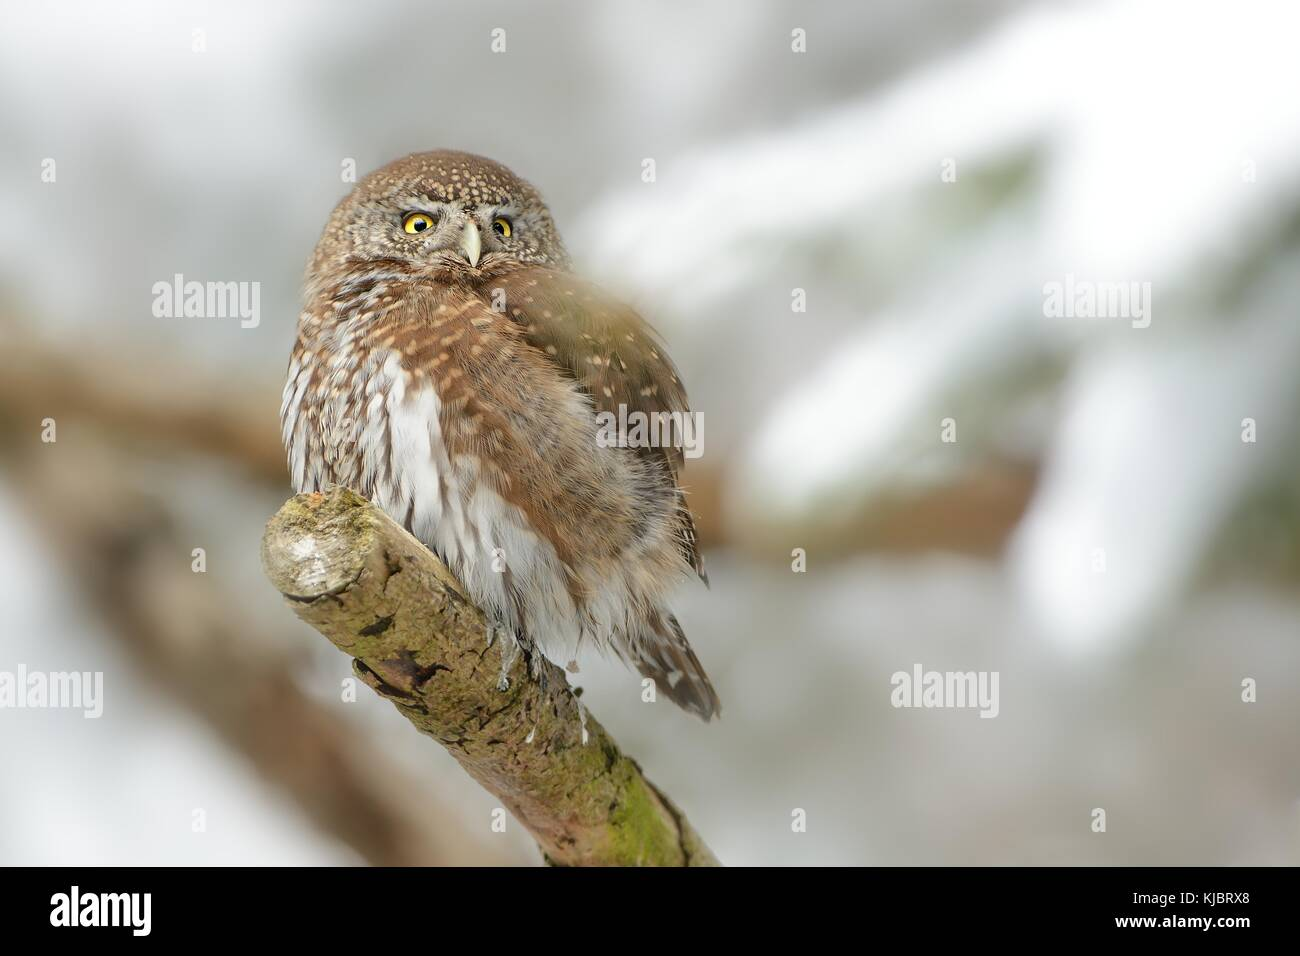 Eurasian Pygmy-Owl sitting on the branch in the forest in winter. - Stock Image